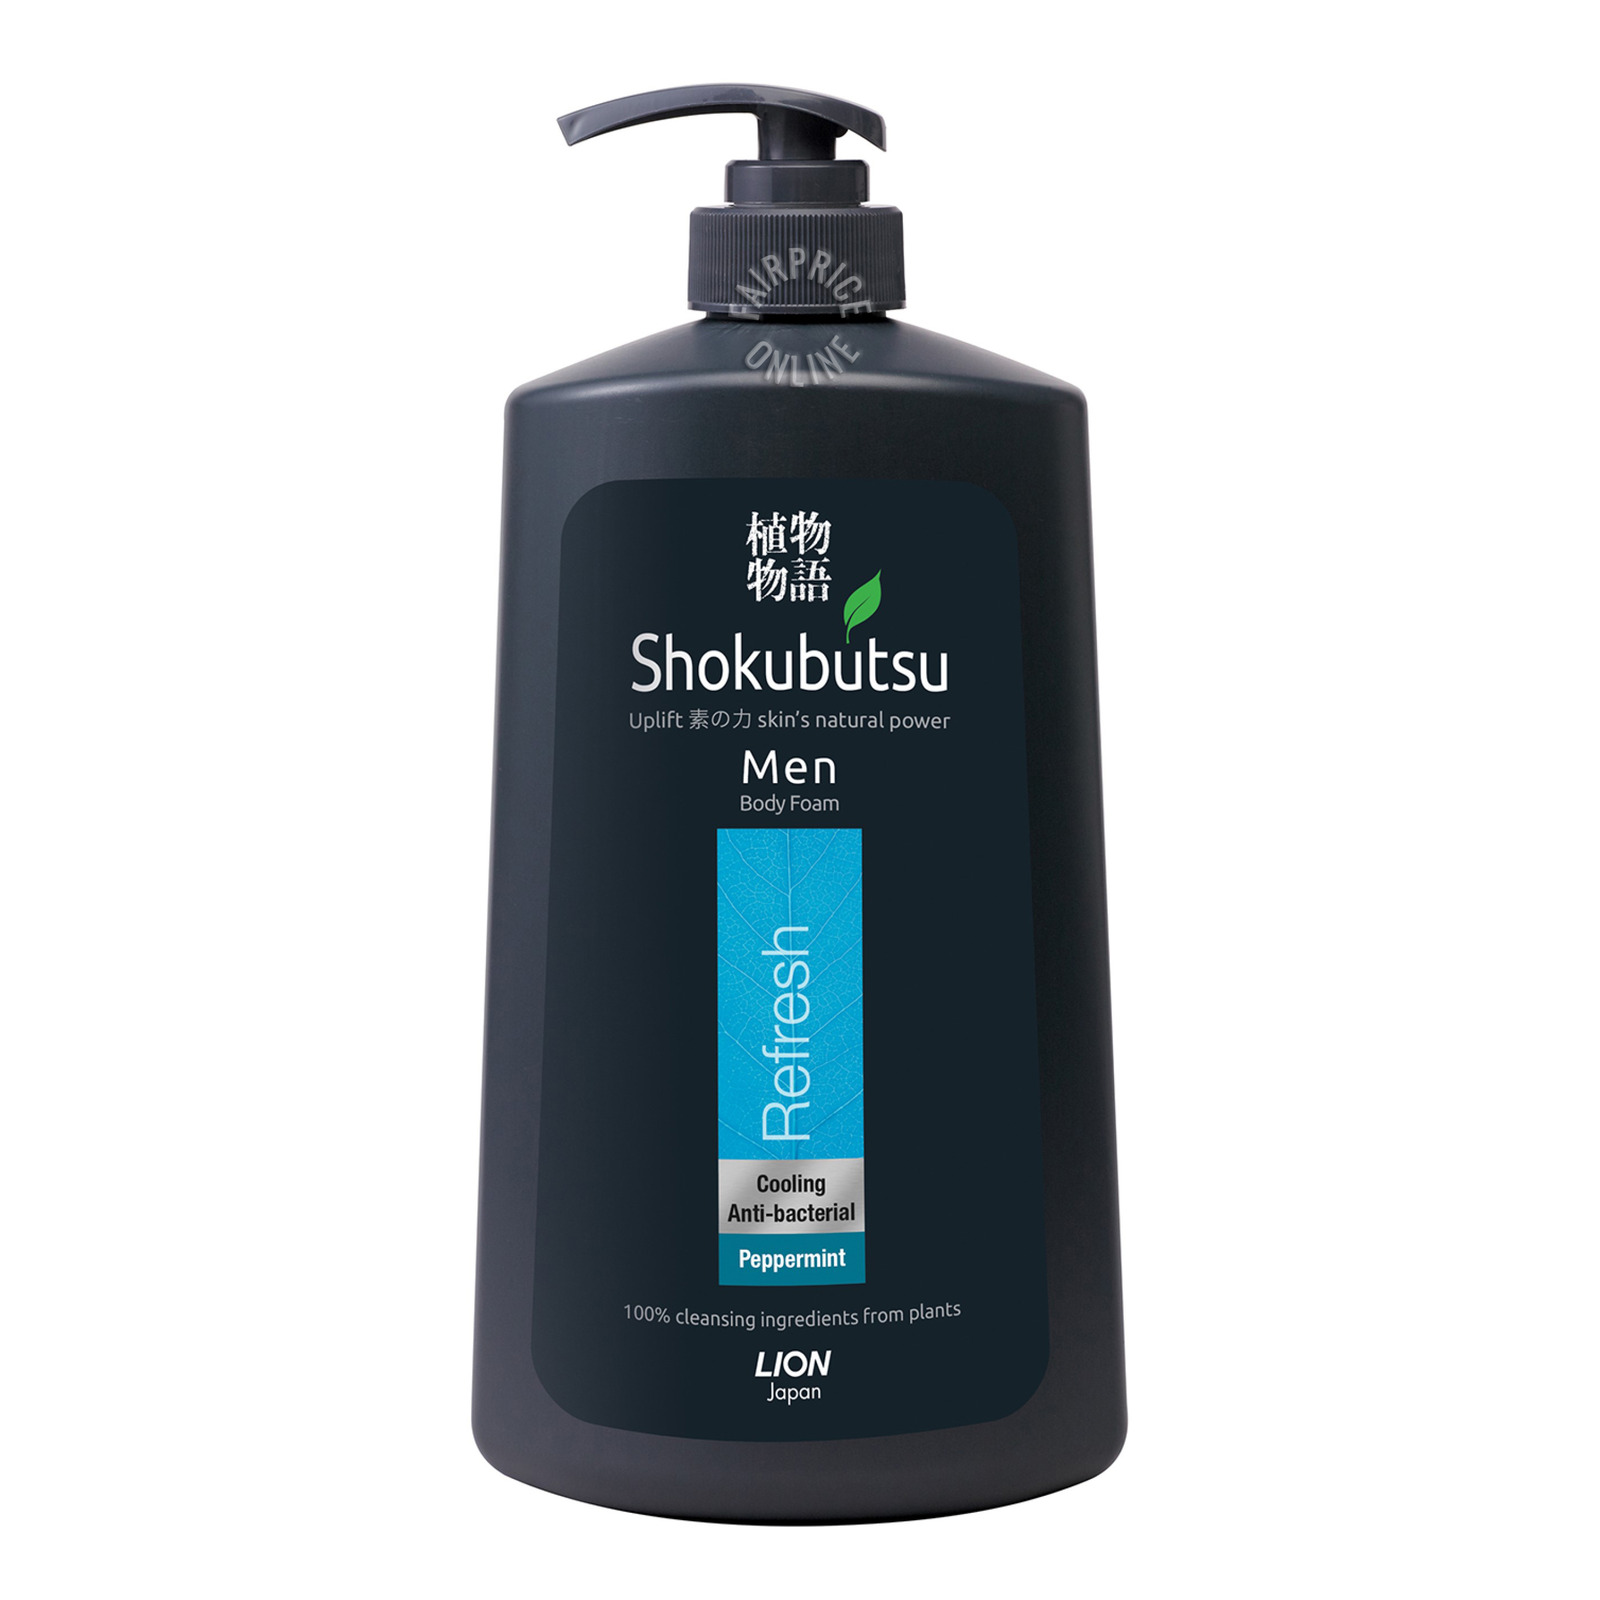 Shokubutsu Men Body Foam - Refresh